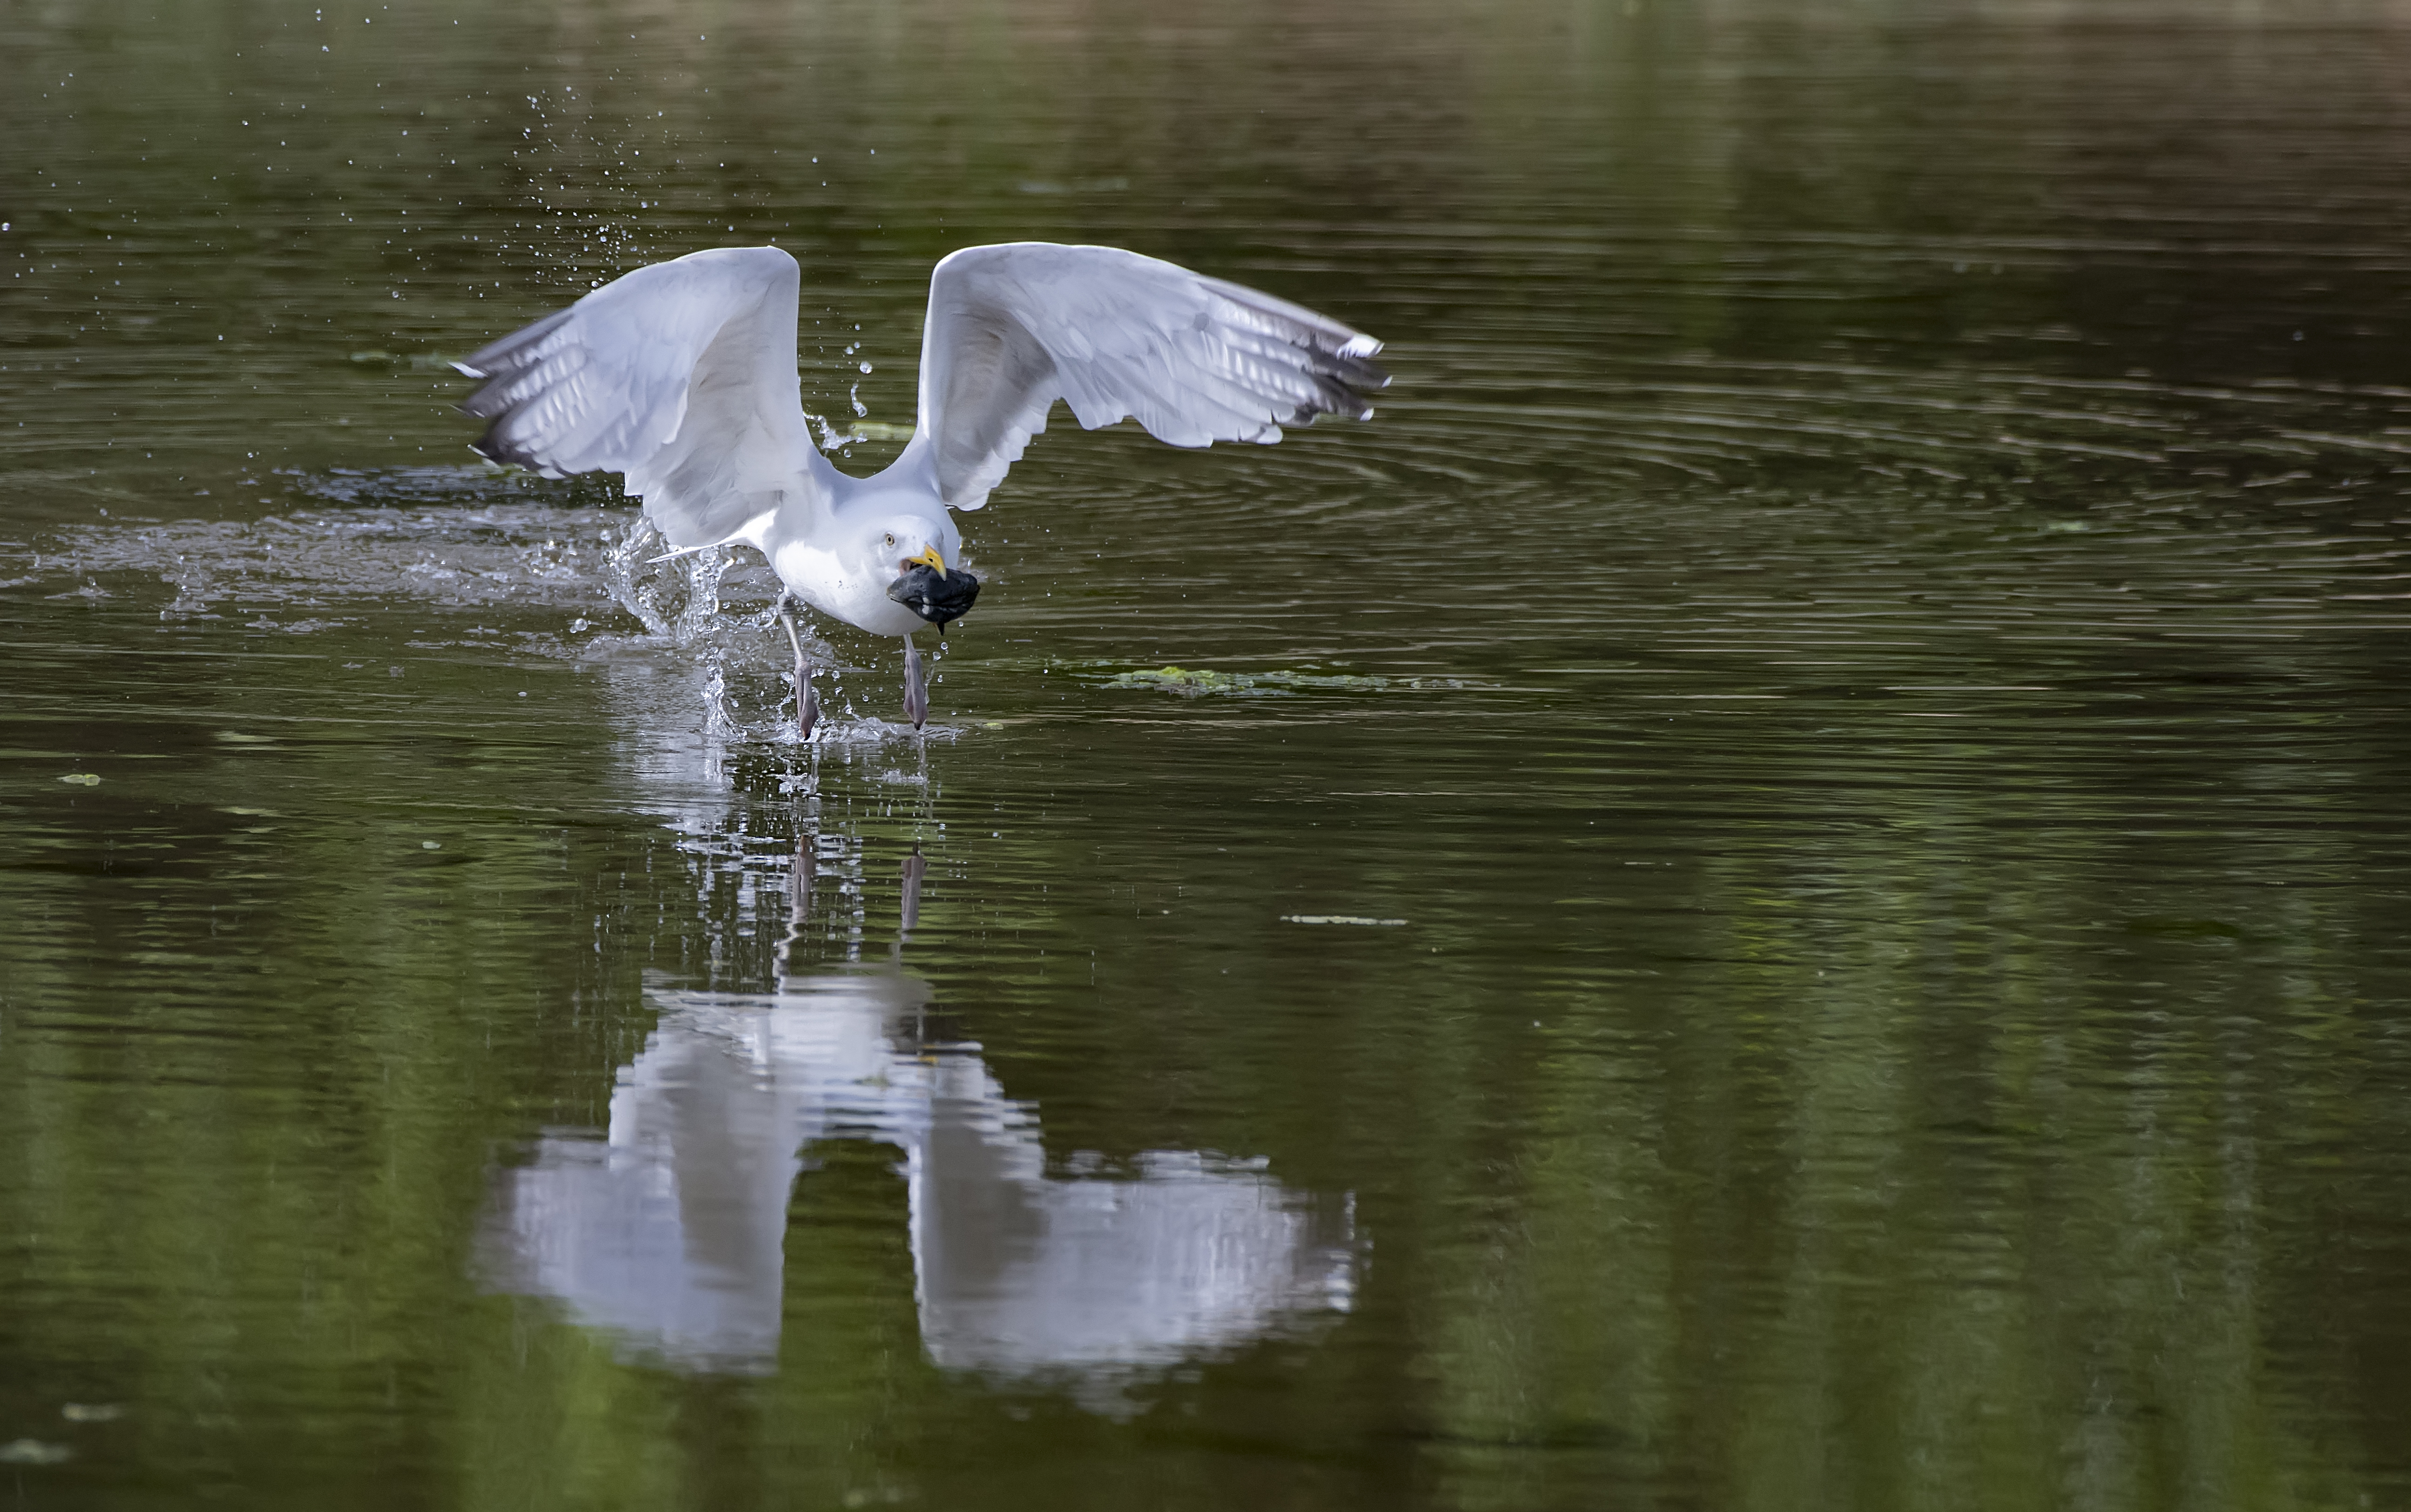 1_Seagul-with-Mussle-take-off